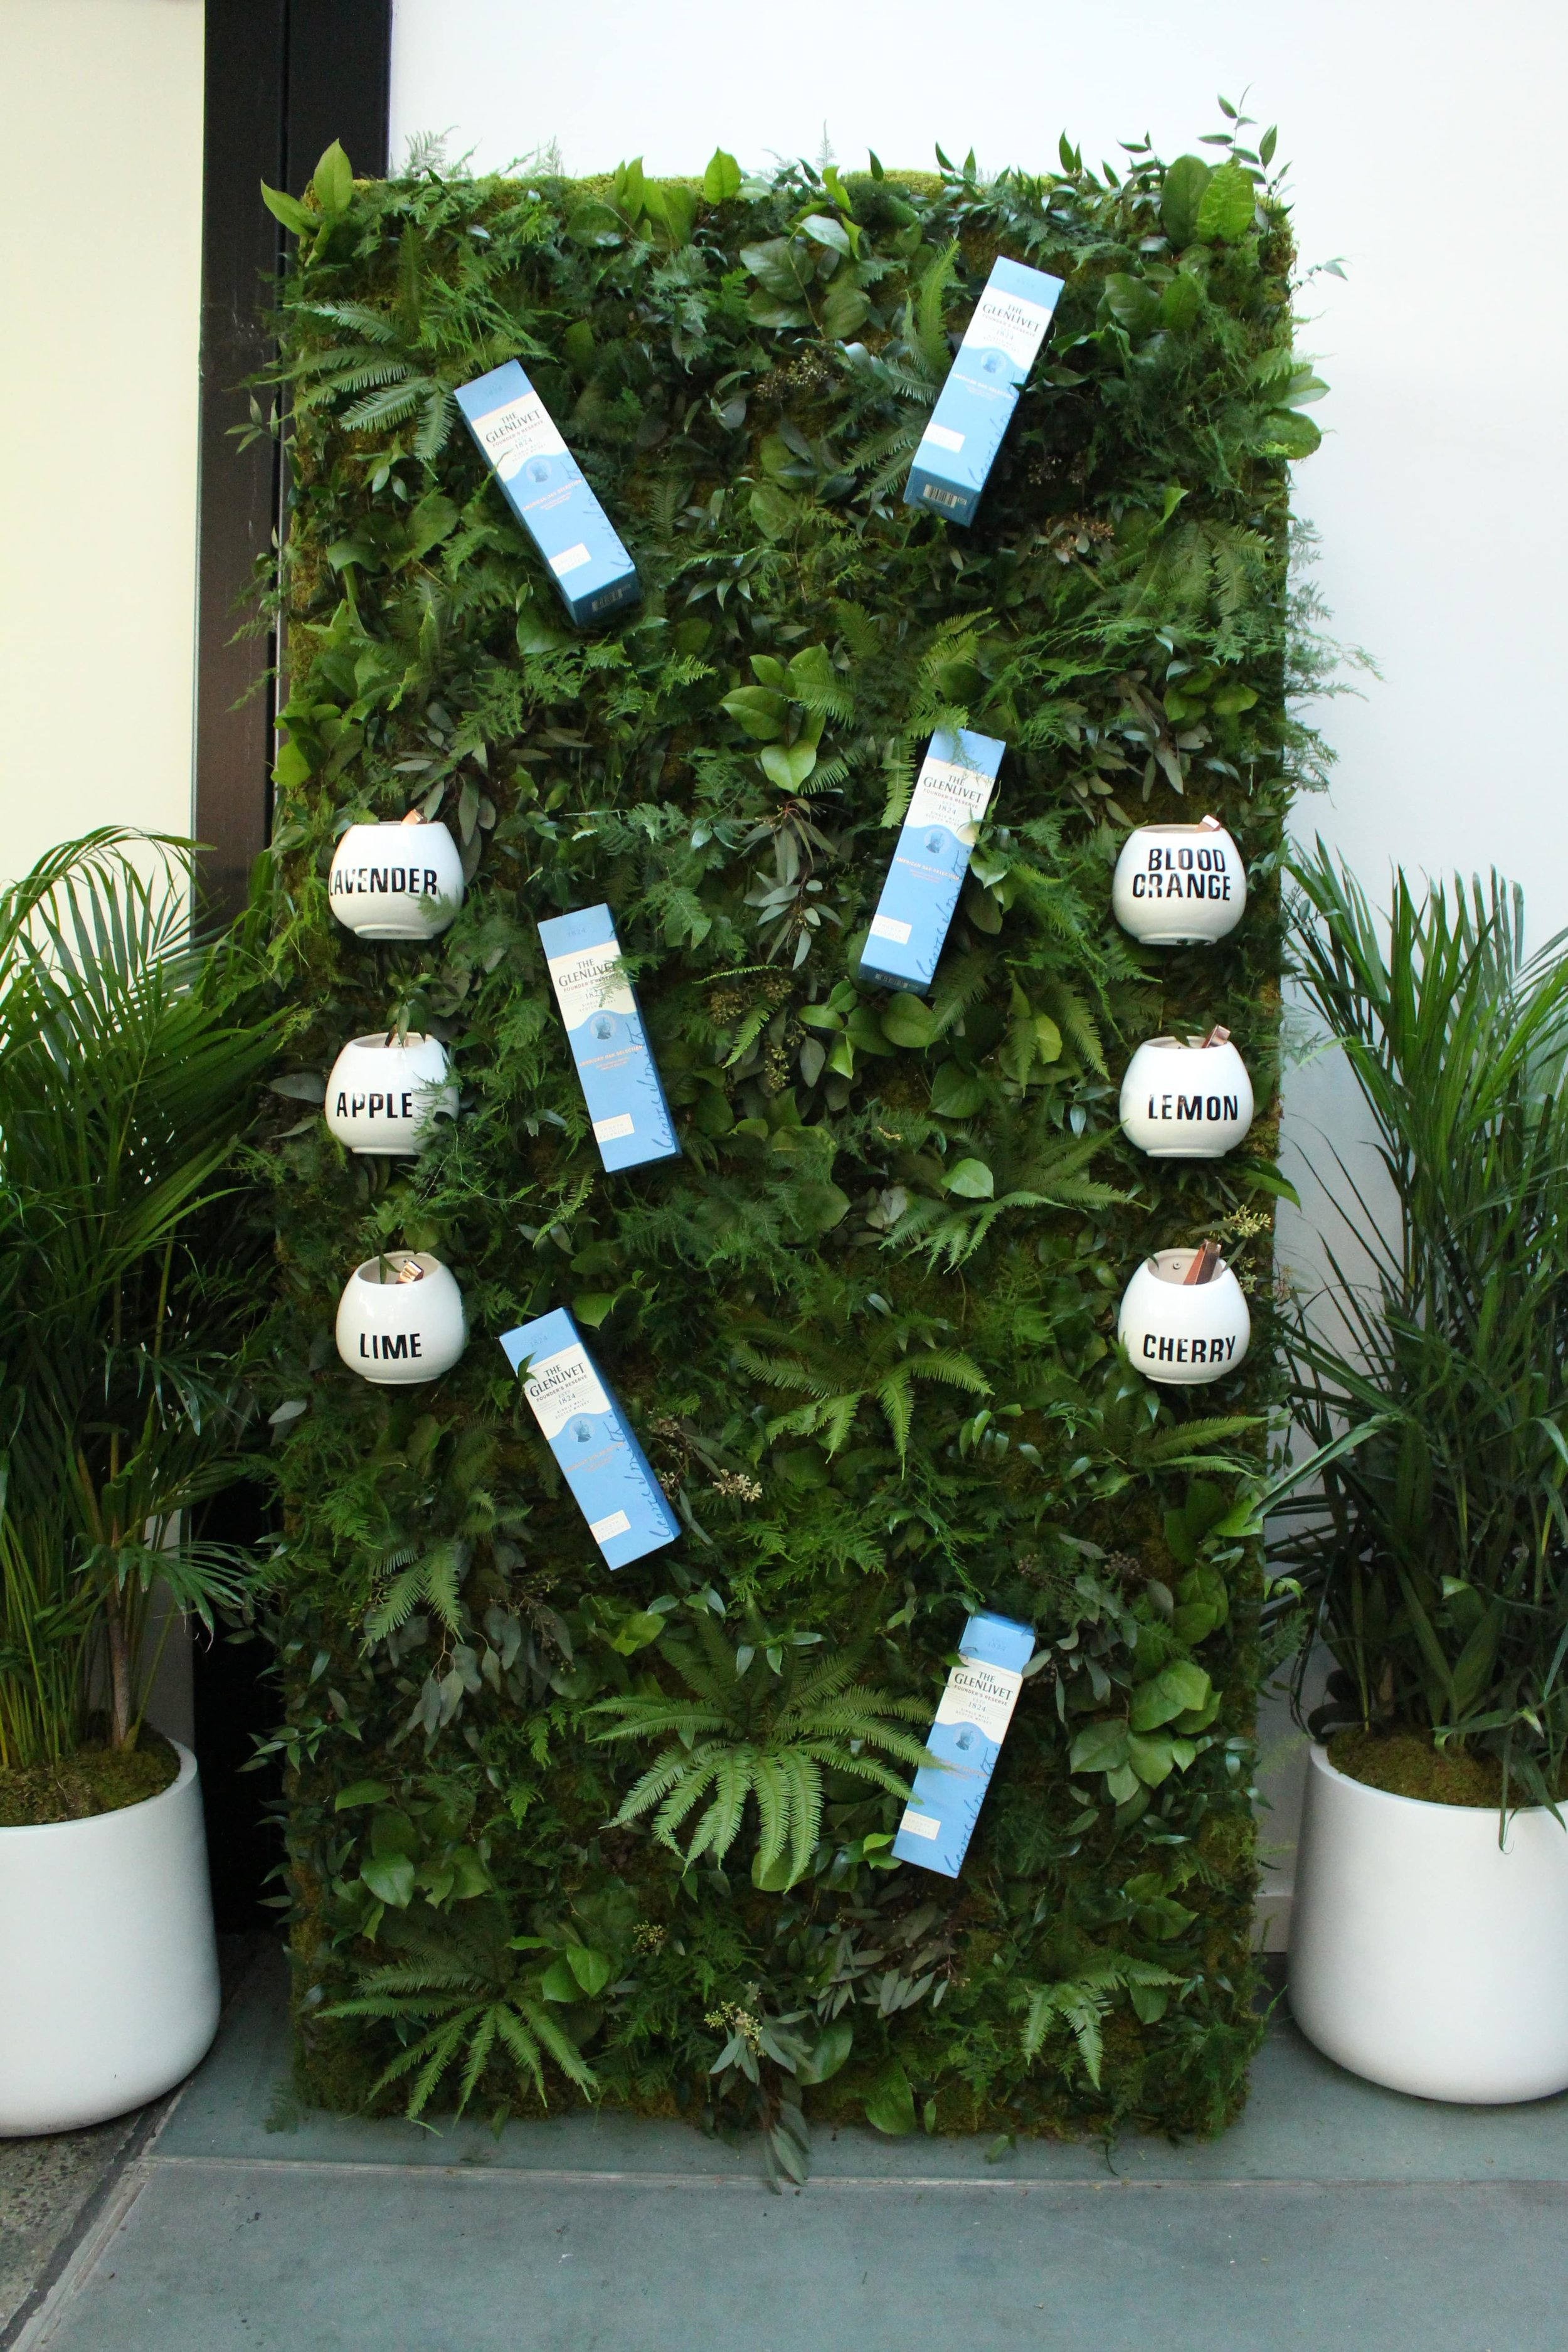 The Glenvilet Product Greenery Wall